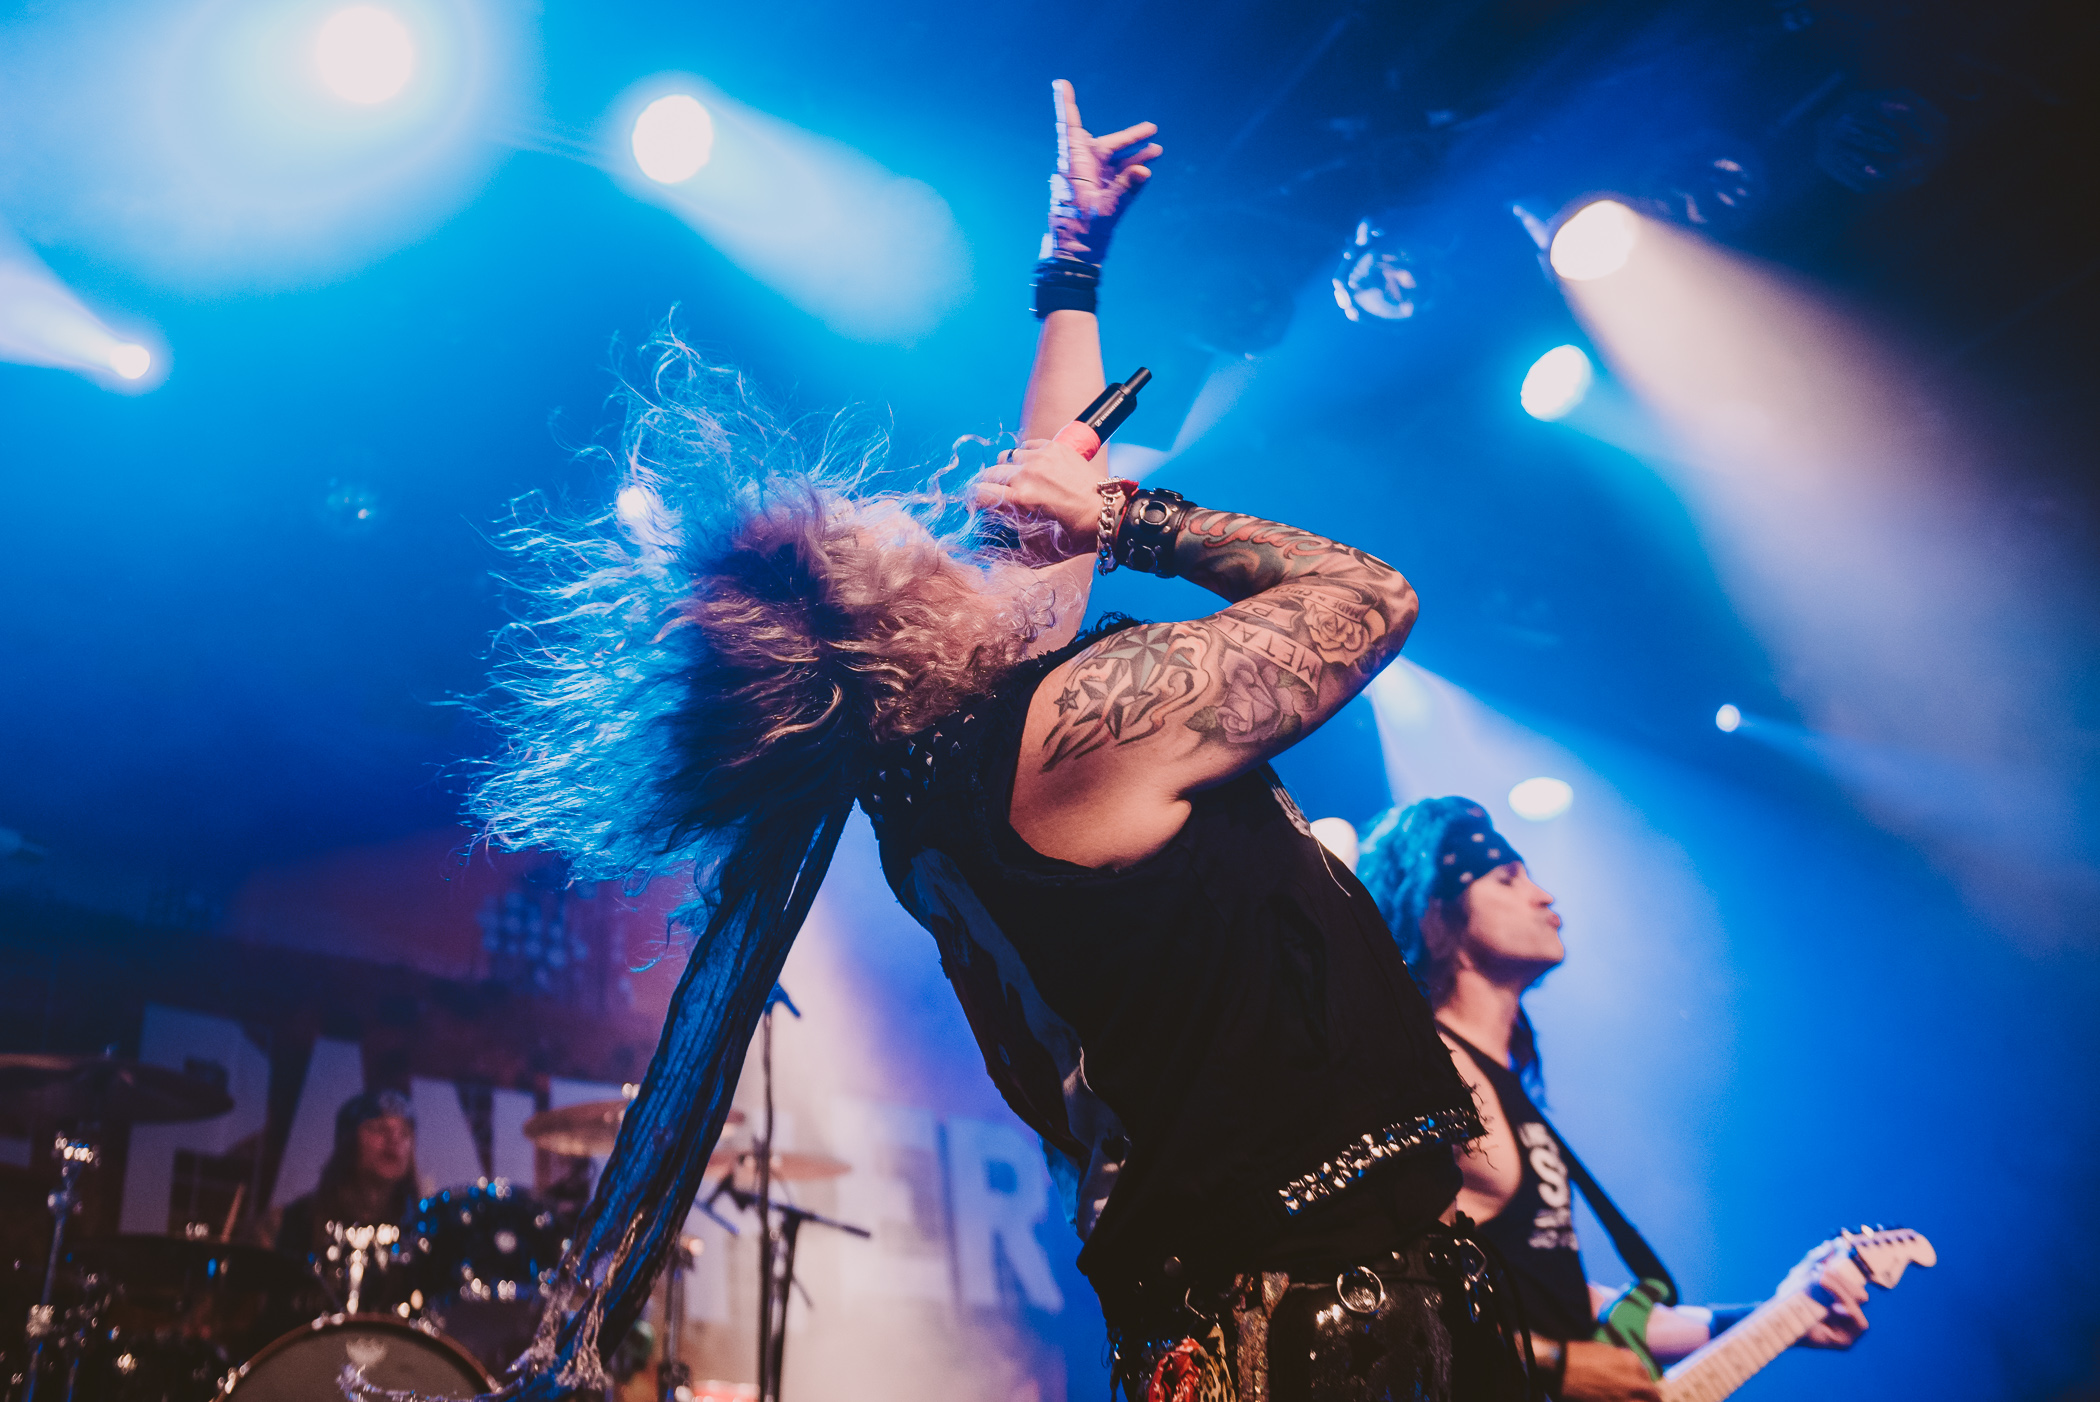 1_Steel_Panther-Commodore-Ballroom-Timothy_Nguyen-20190411 (2 of 21).JPG